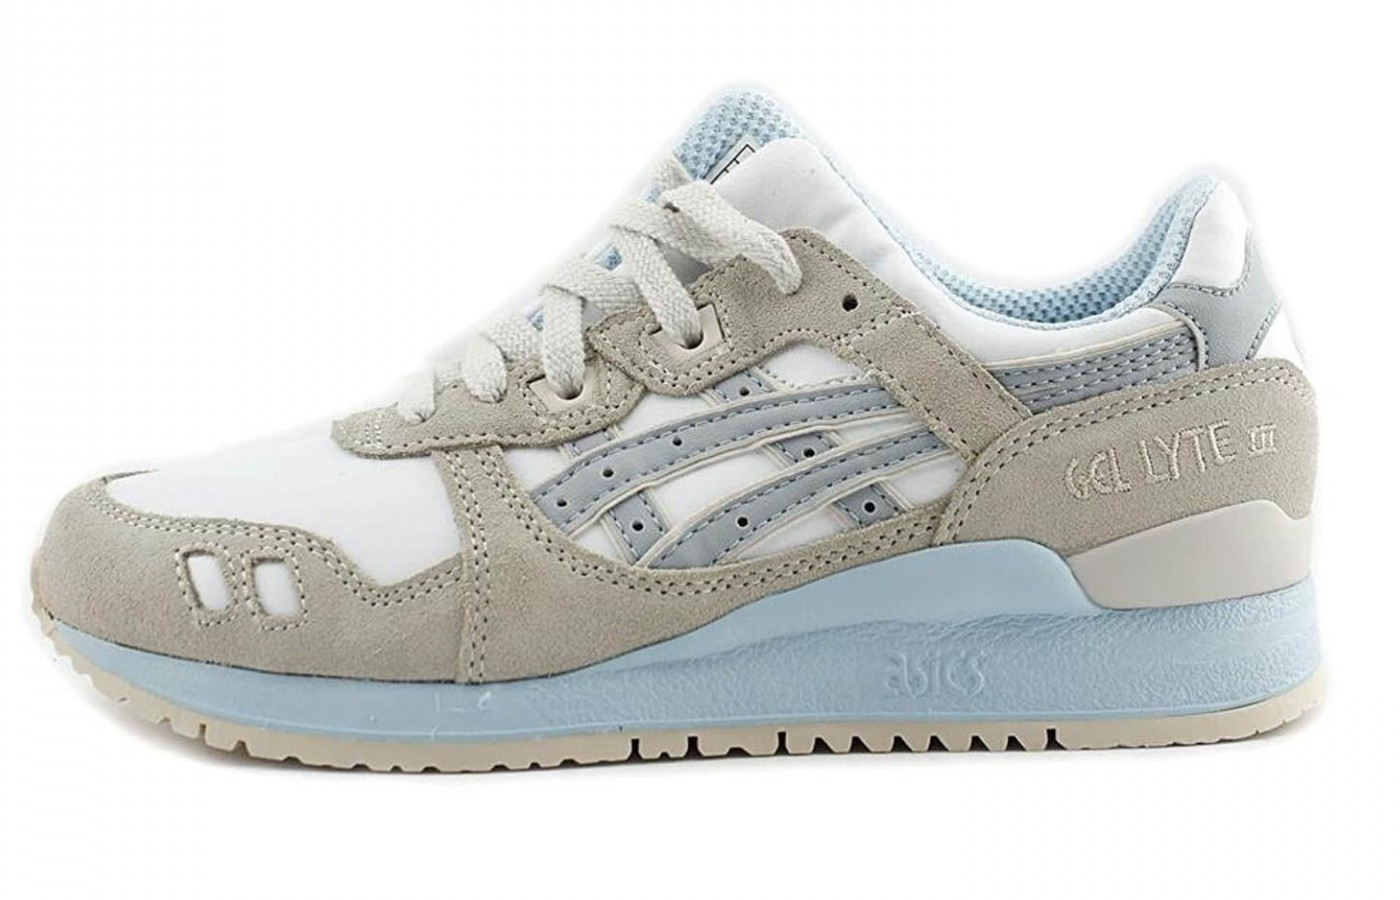 The Asics Gel Lyte III has a triple density EVA midsole